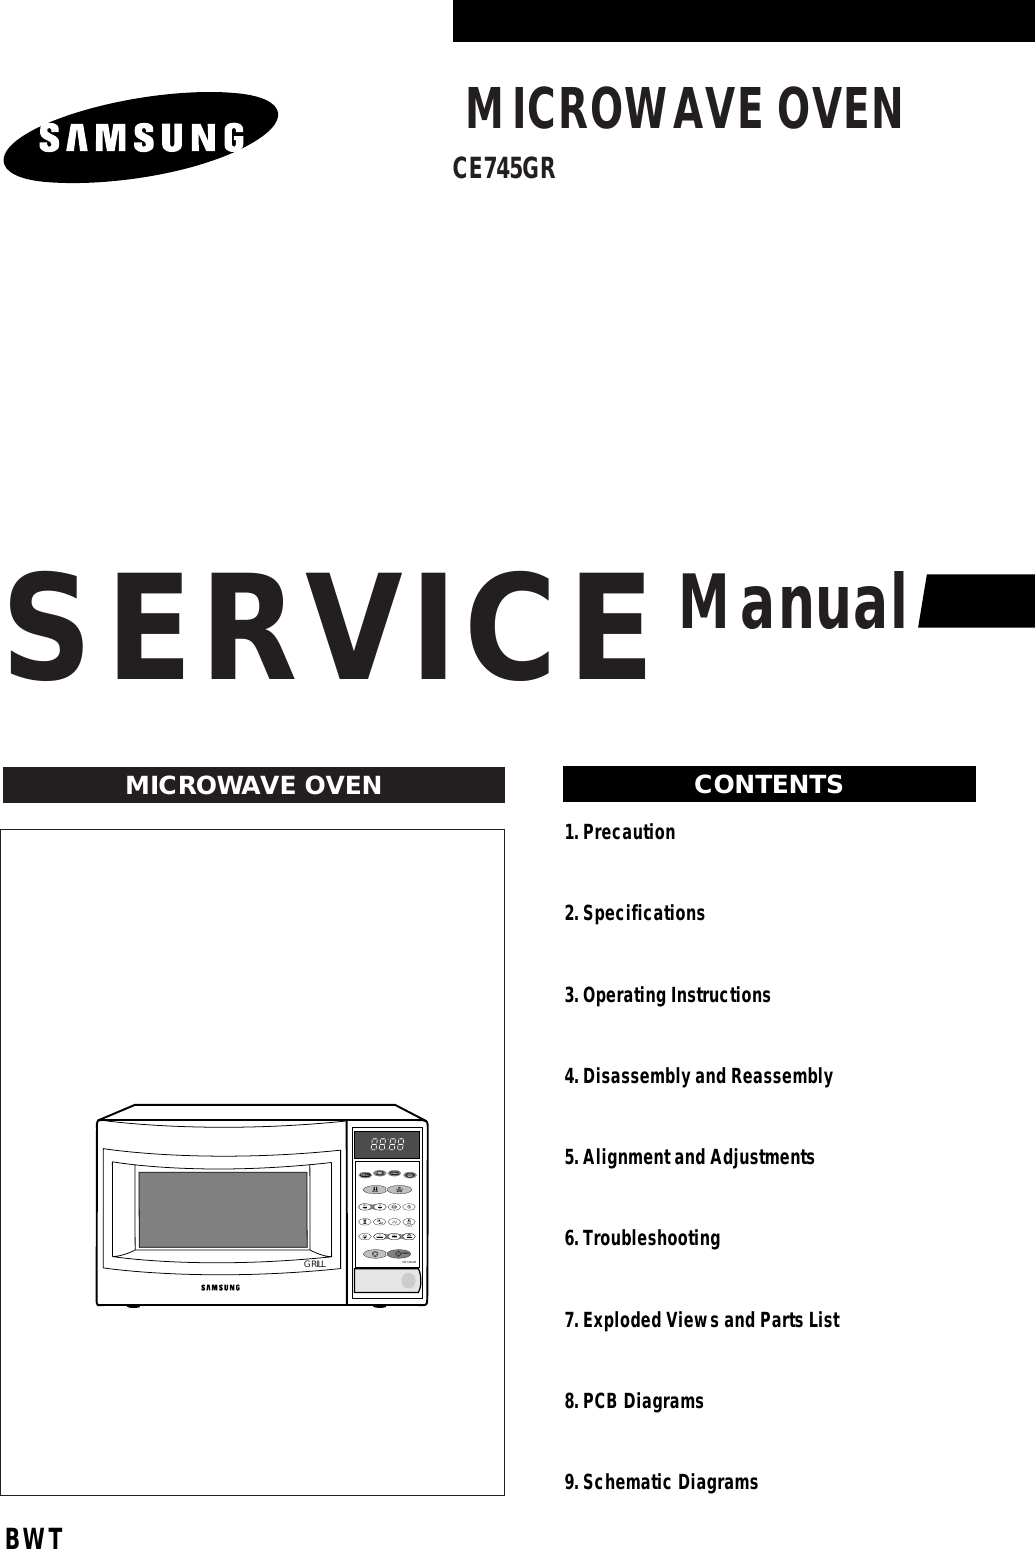 Samsung Microwave Oven Ce745Gr Users Manual